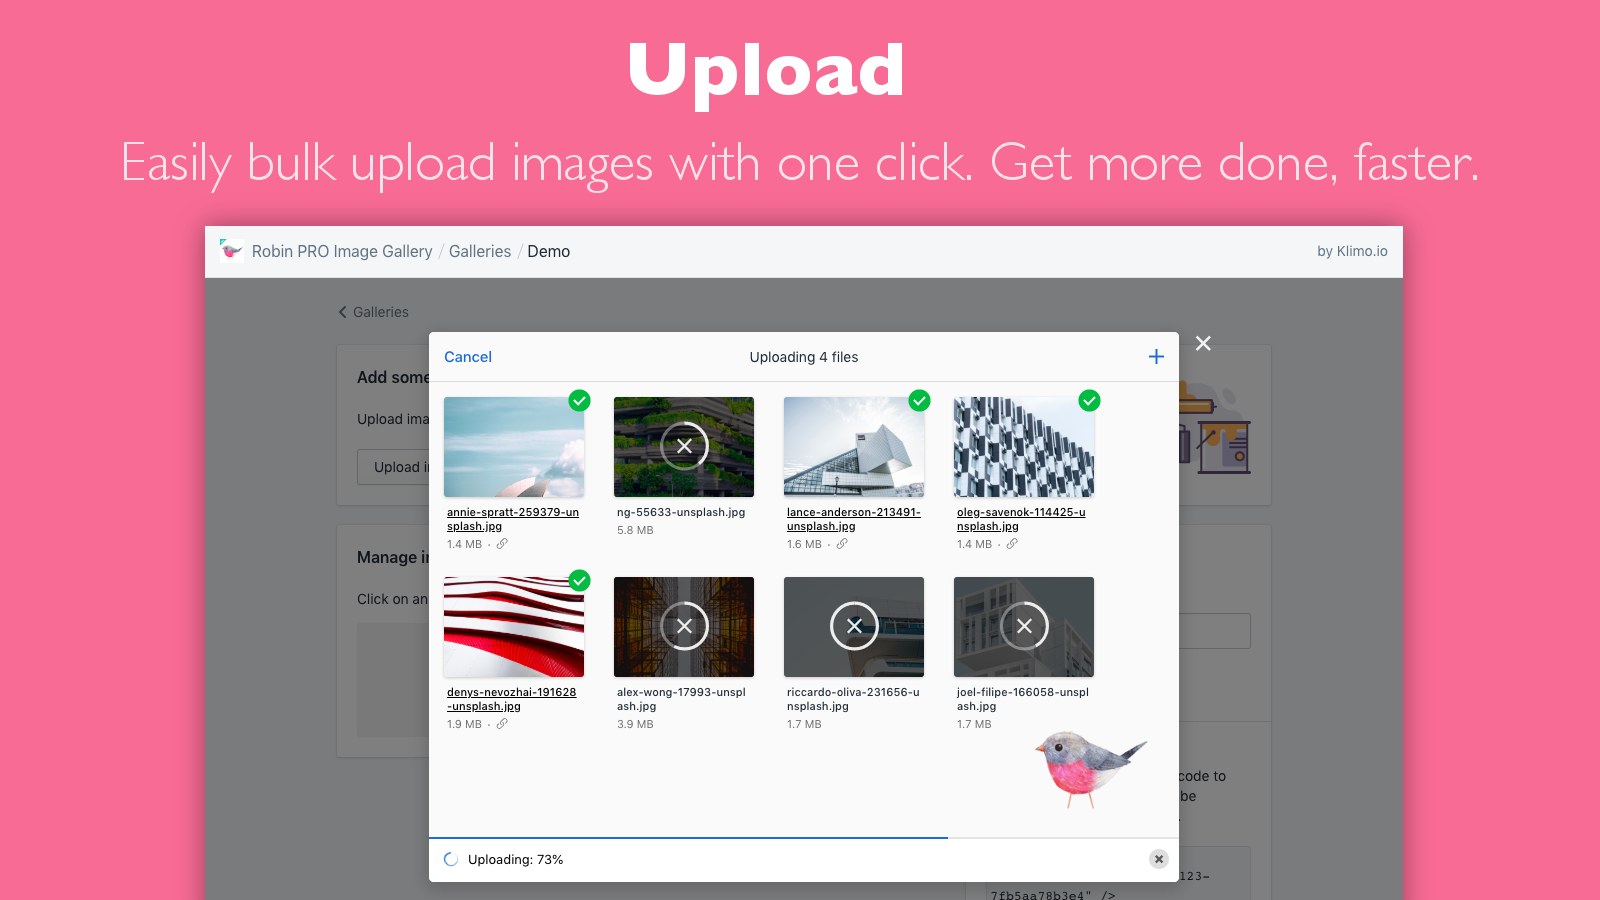 Bulk upload your photo gallery images with one click